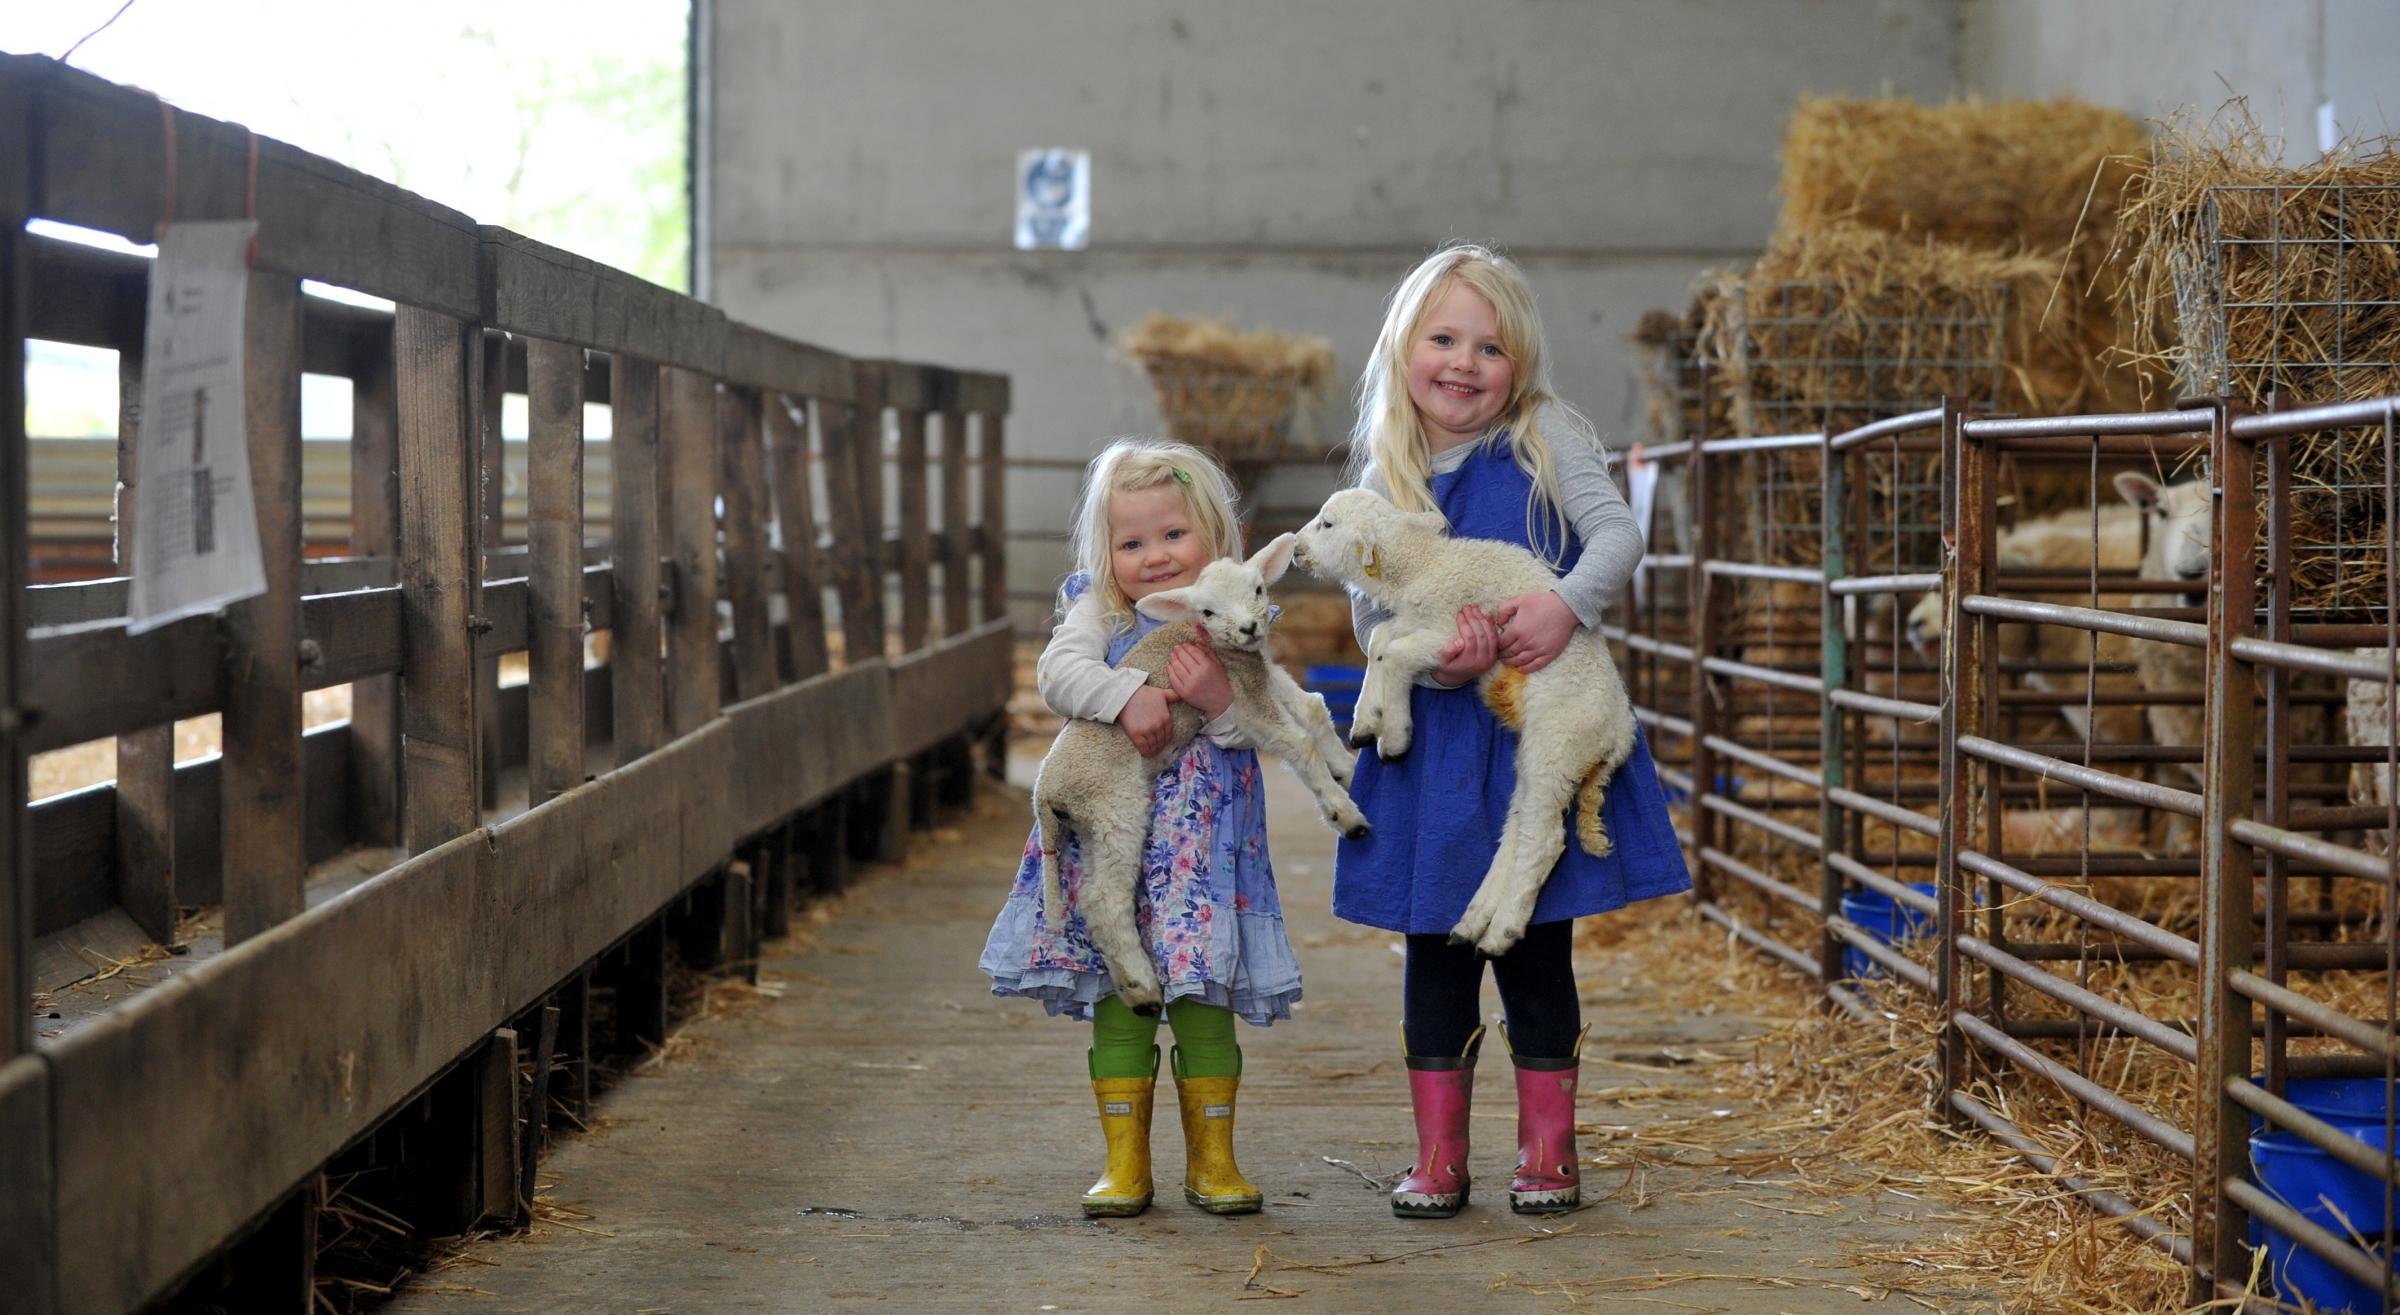 Children were able to get close to the lambs and witness several being born. image: Mikal Ludlow